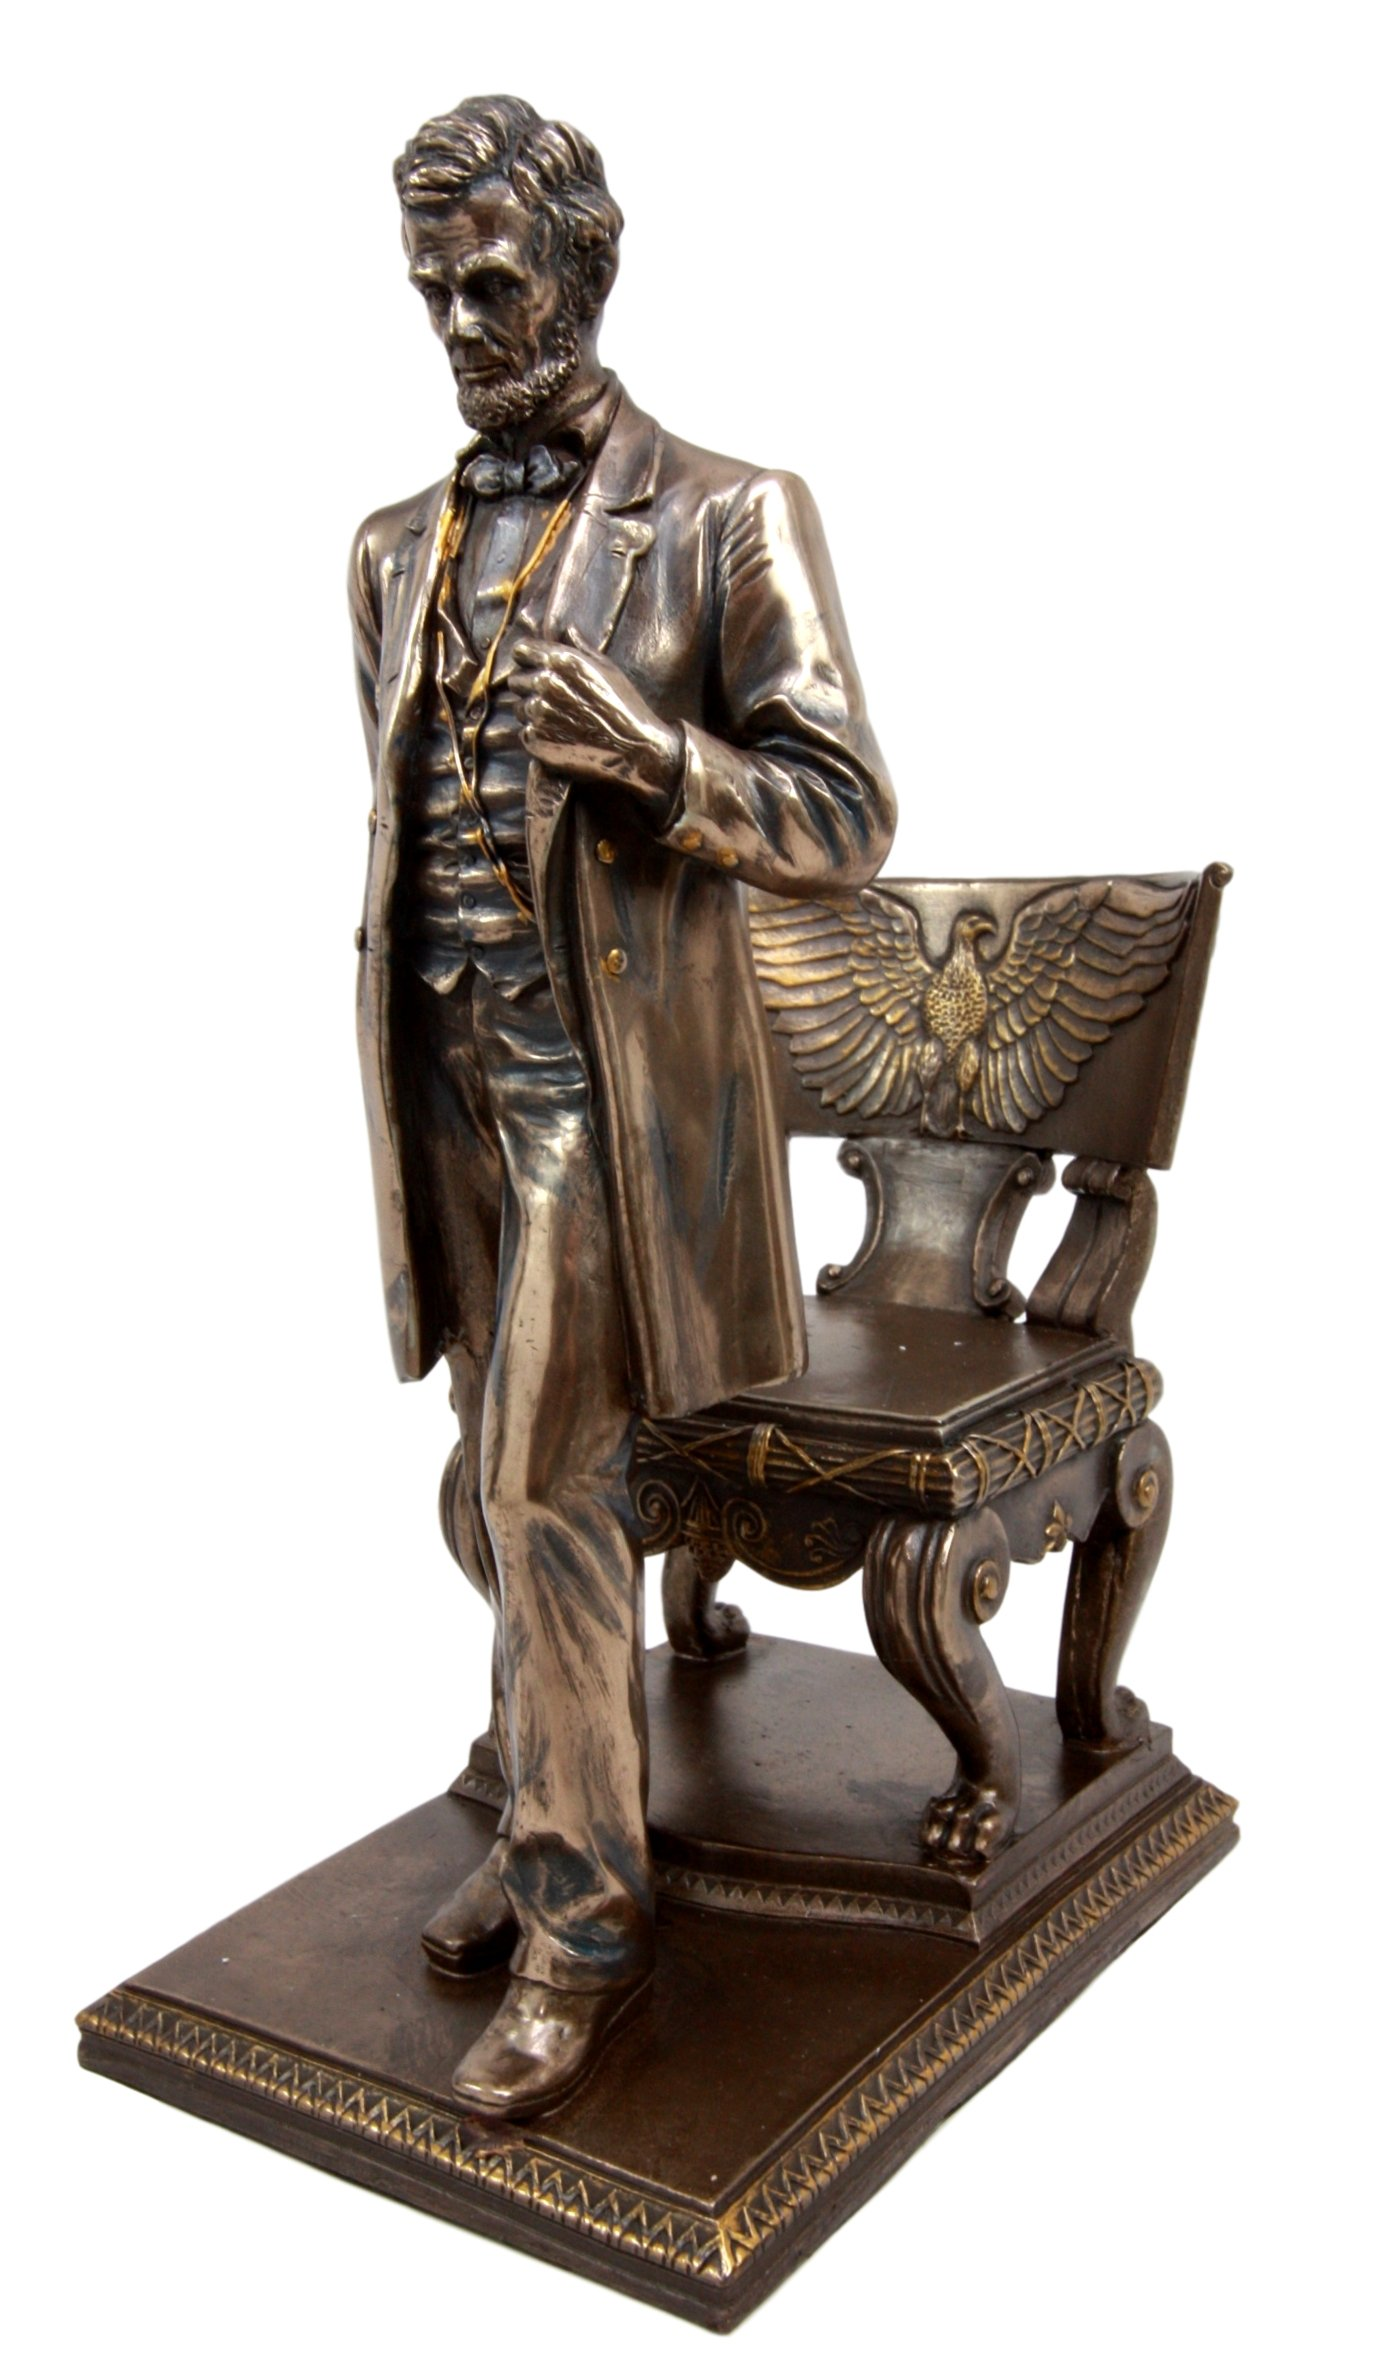 Ebros United States Of America 16th President Abraham Lincoln Standing By Eagle Chair of State Abraham Lincoln White House Historical Figurine 9''H